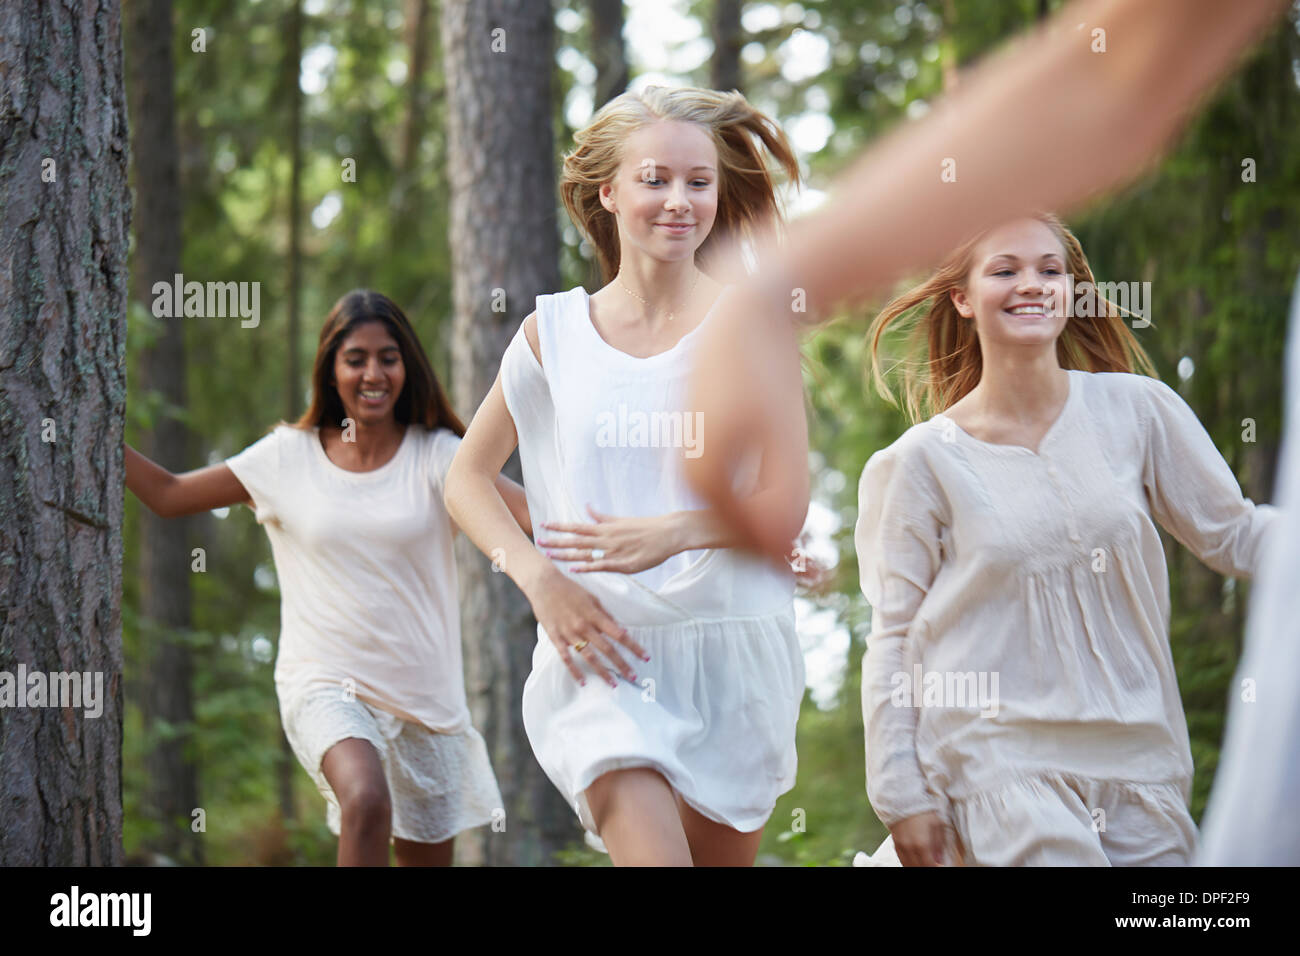 Teenage girls running in forest - Stock Image